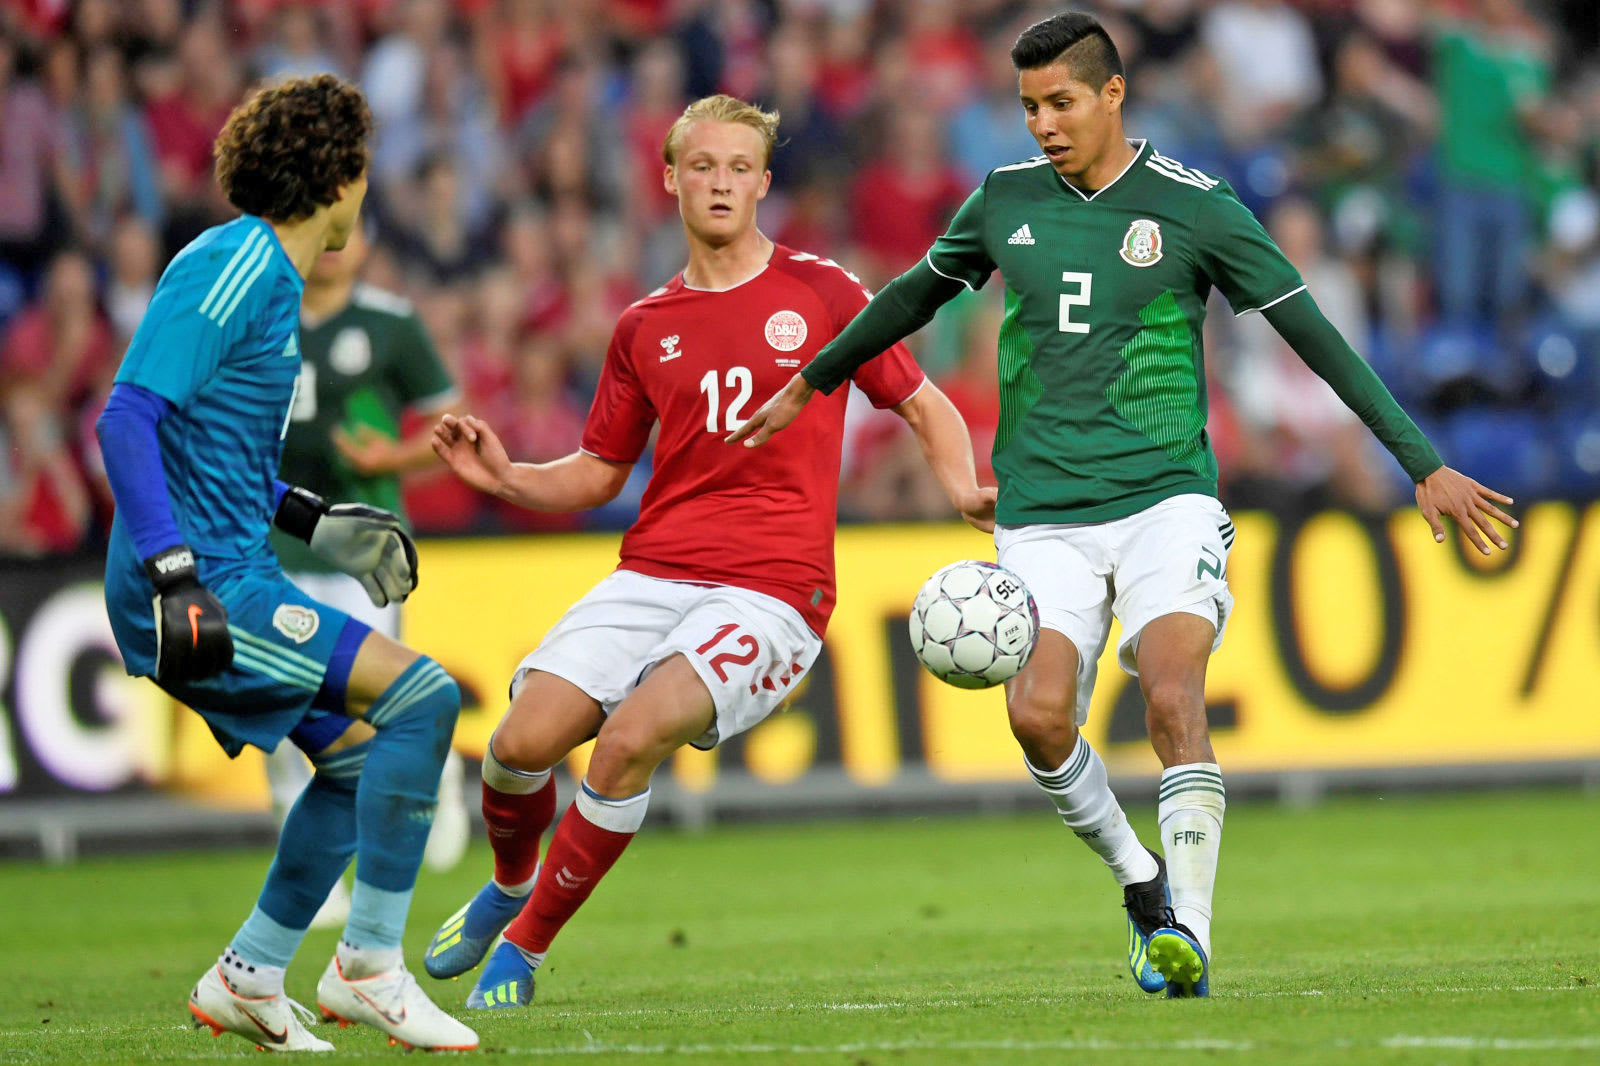 YouTube's World Cup coverage includes near-live highlights in Spanish